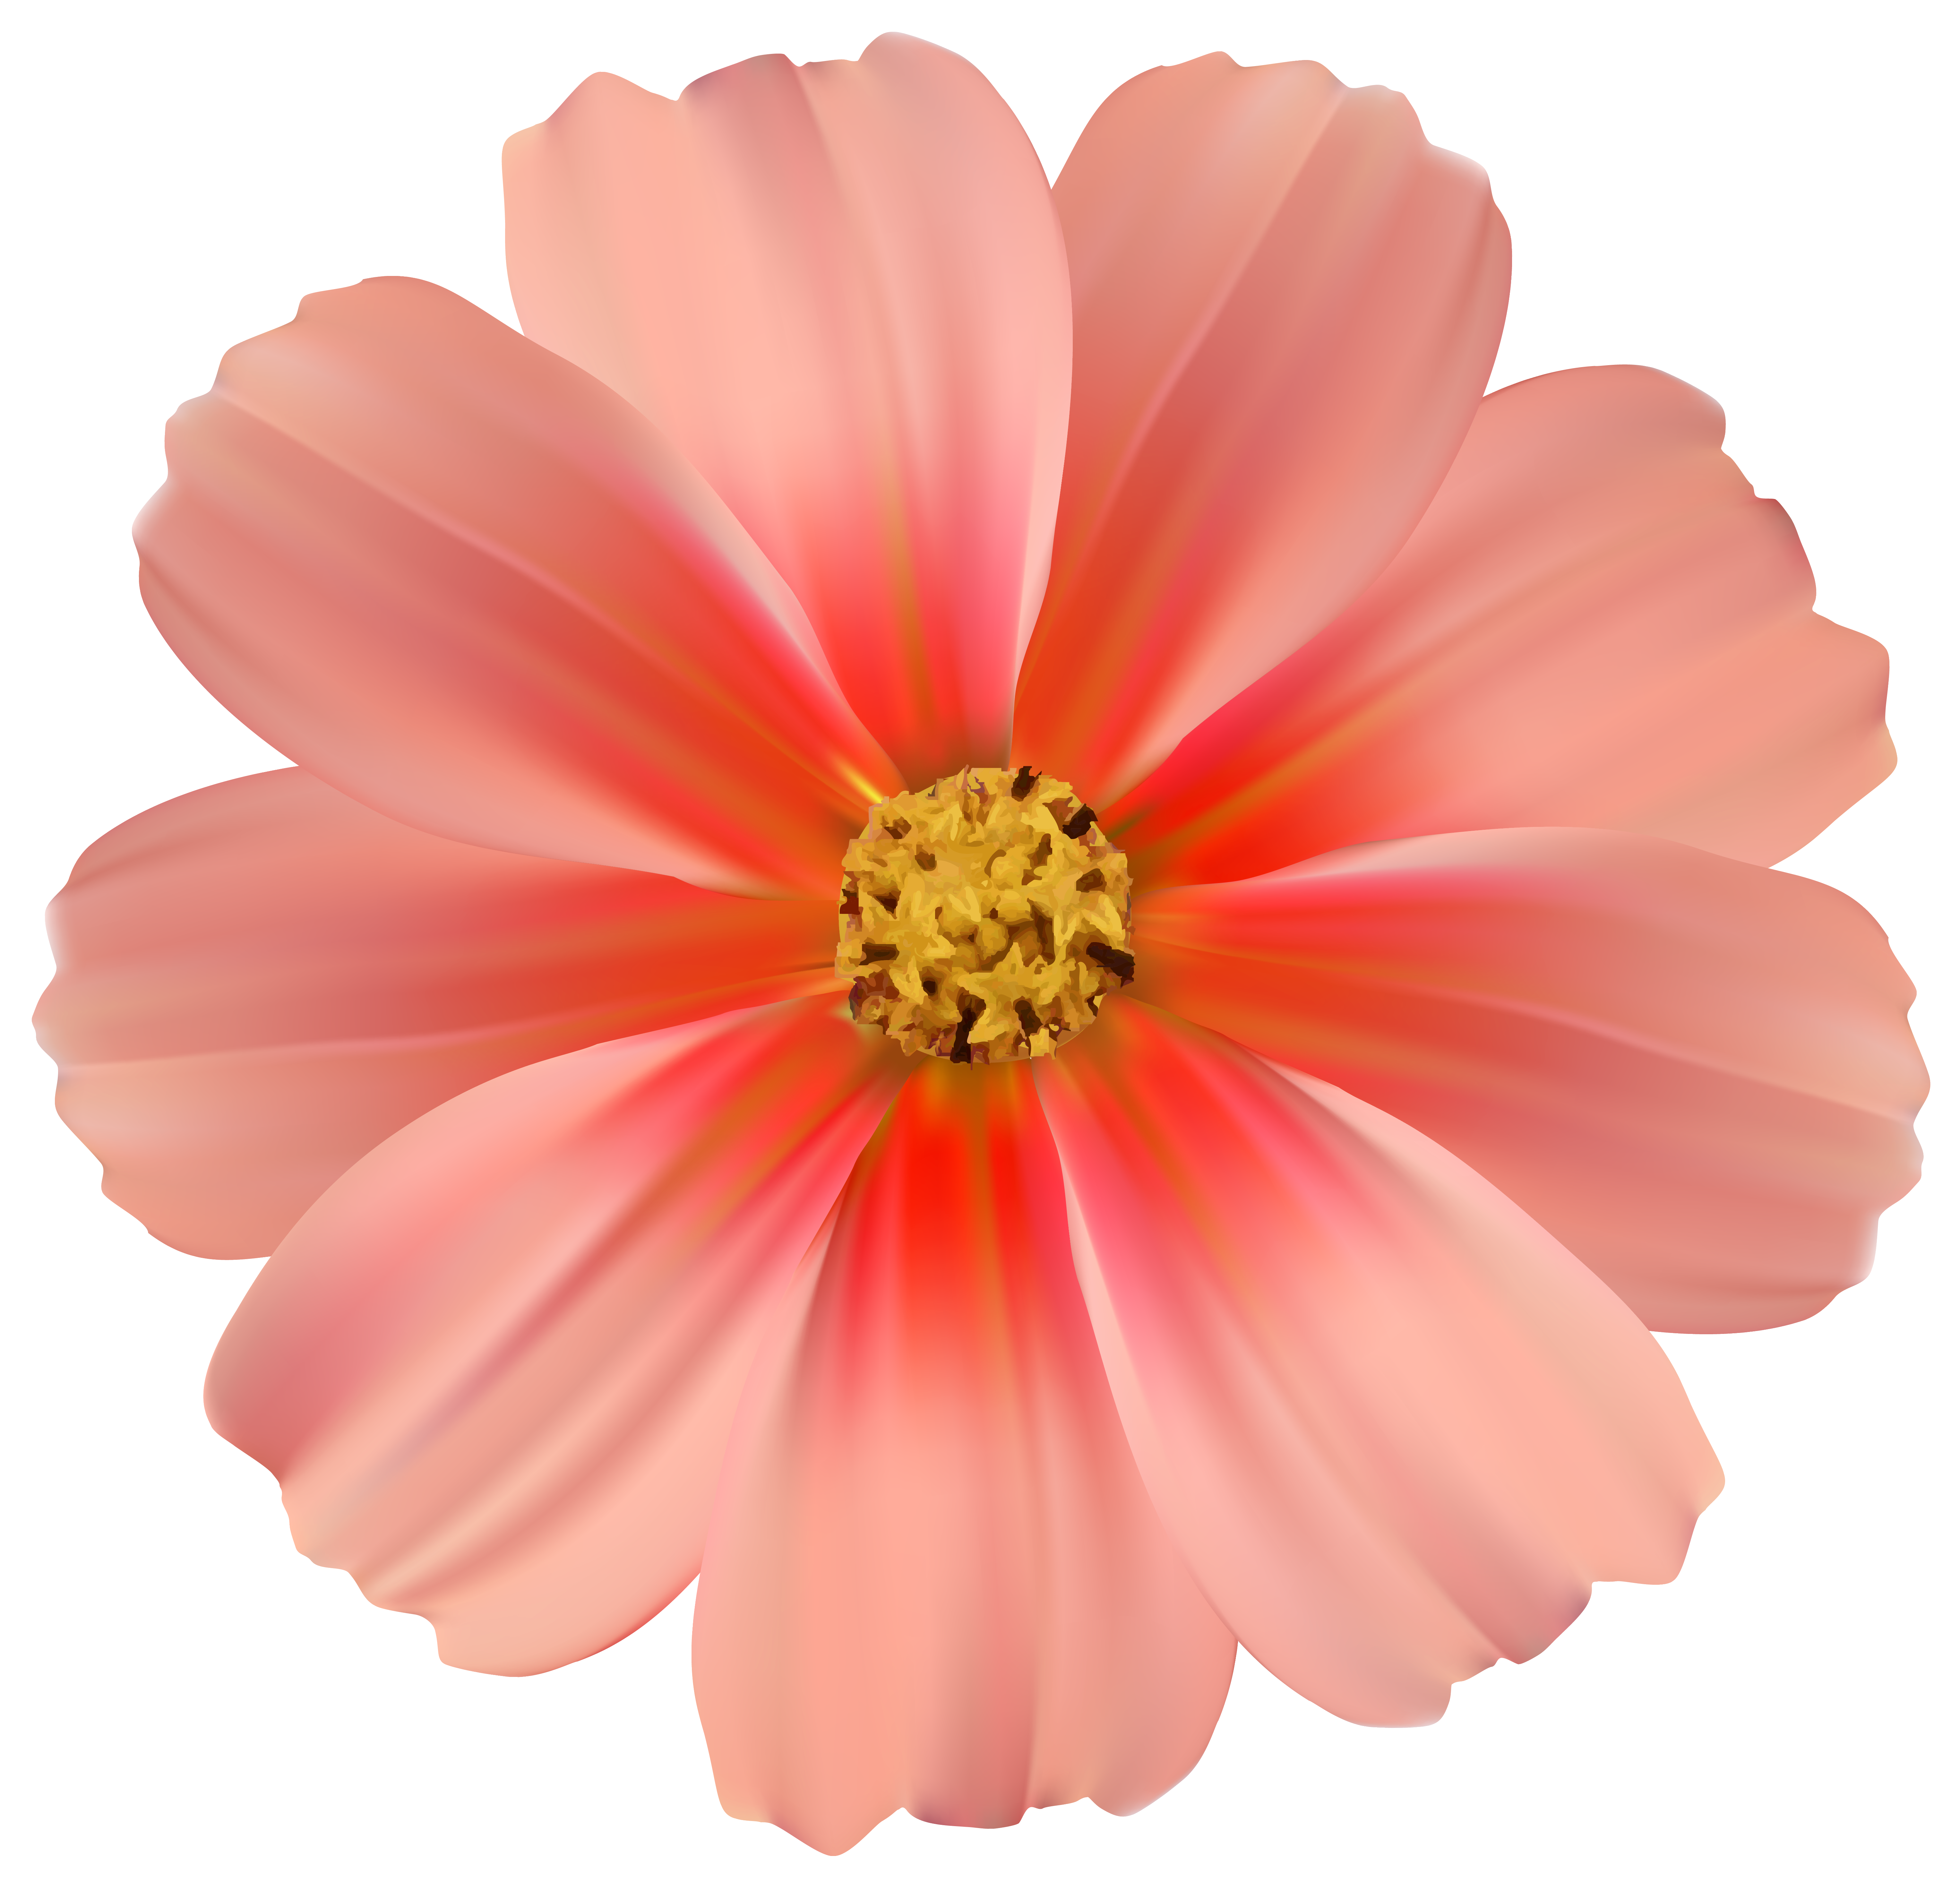 Daisy flower clipart png graphic transparent download Orange Daisy PNG Clipart Image | Gallery Yopriceville - High ... graphic transparent download